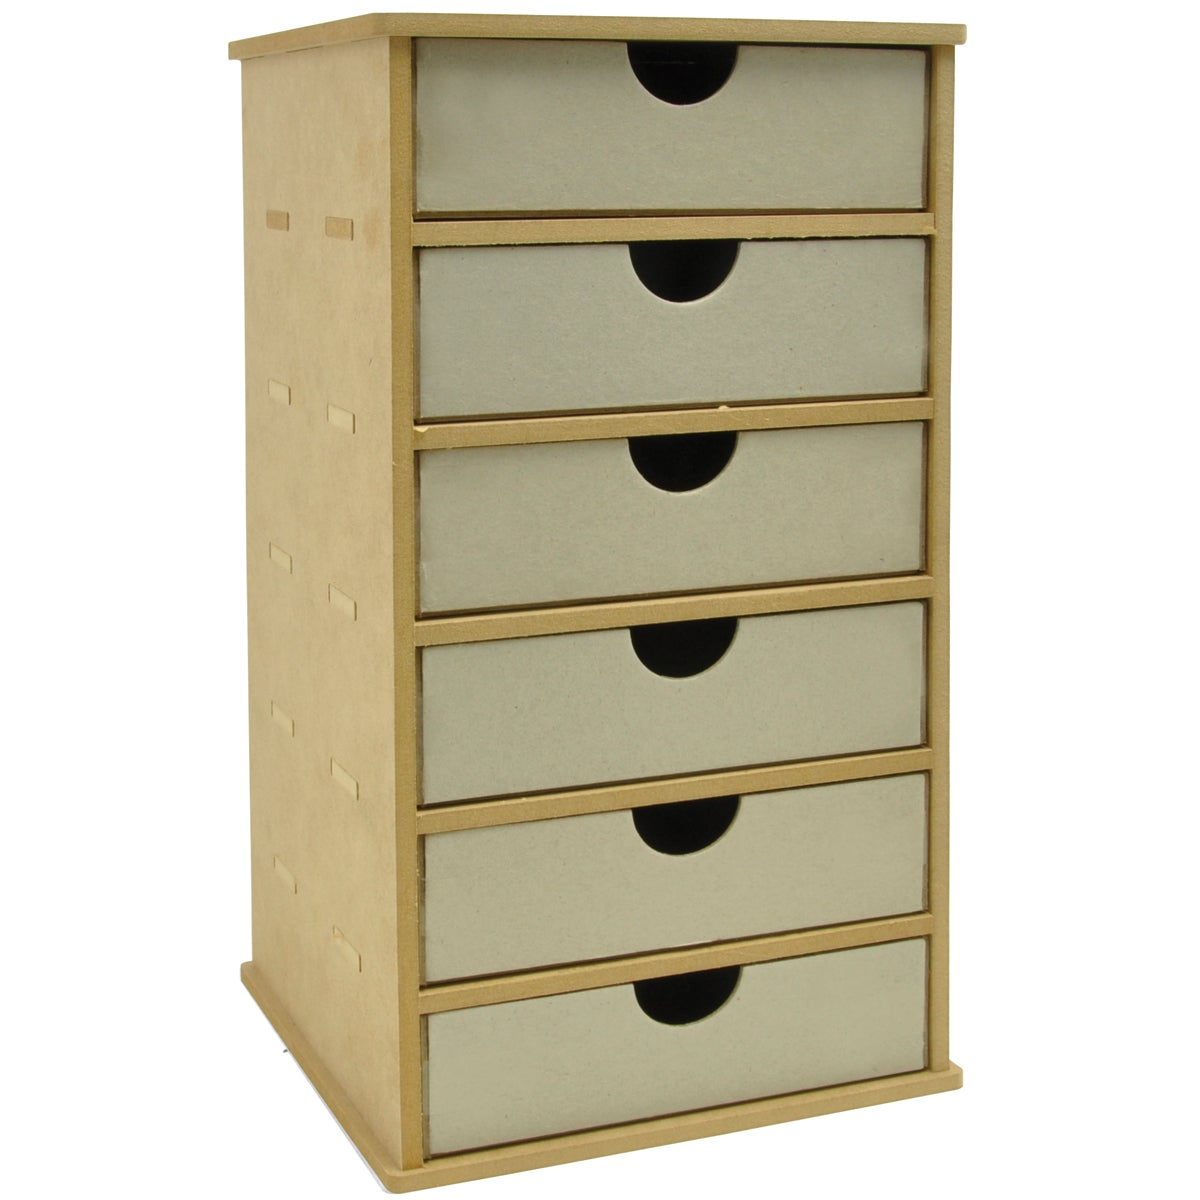 "Beyond The Page MDF Tower Storage With 6 Chipboard Drawers-7""X7.25""X13.5"" (180MM X 185MM X 345MM)"